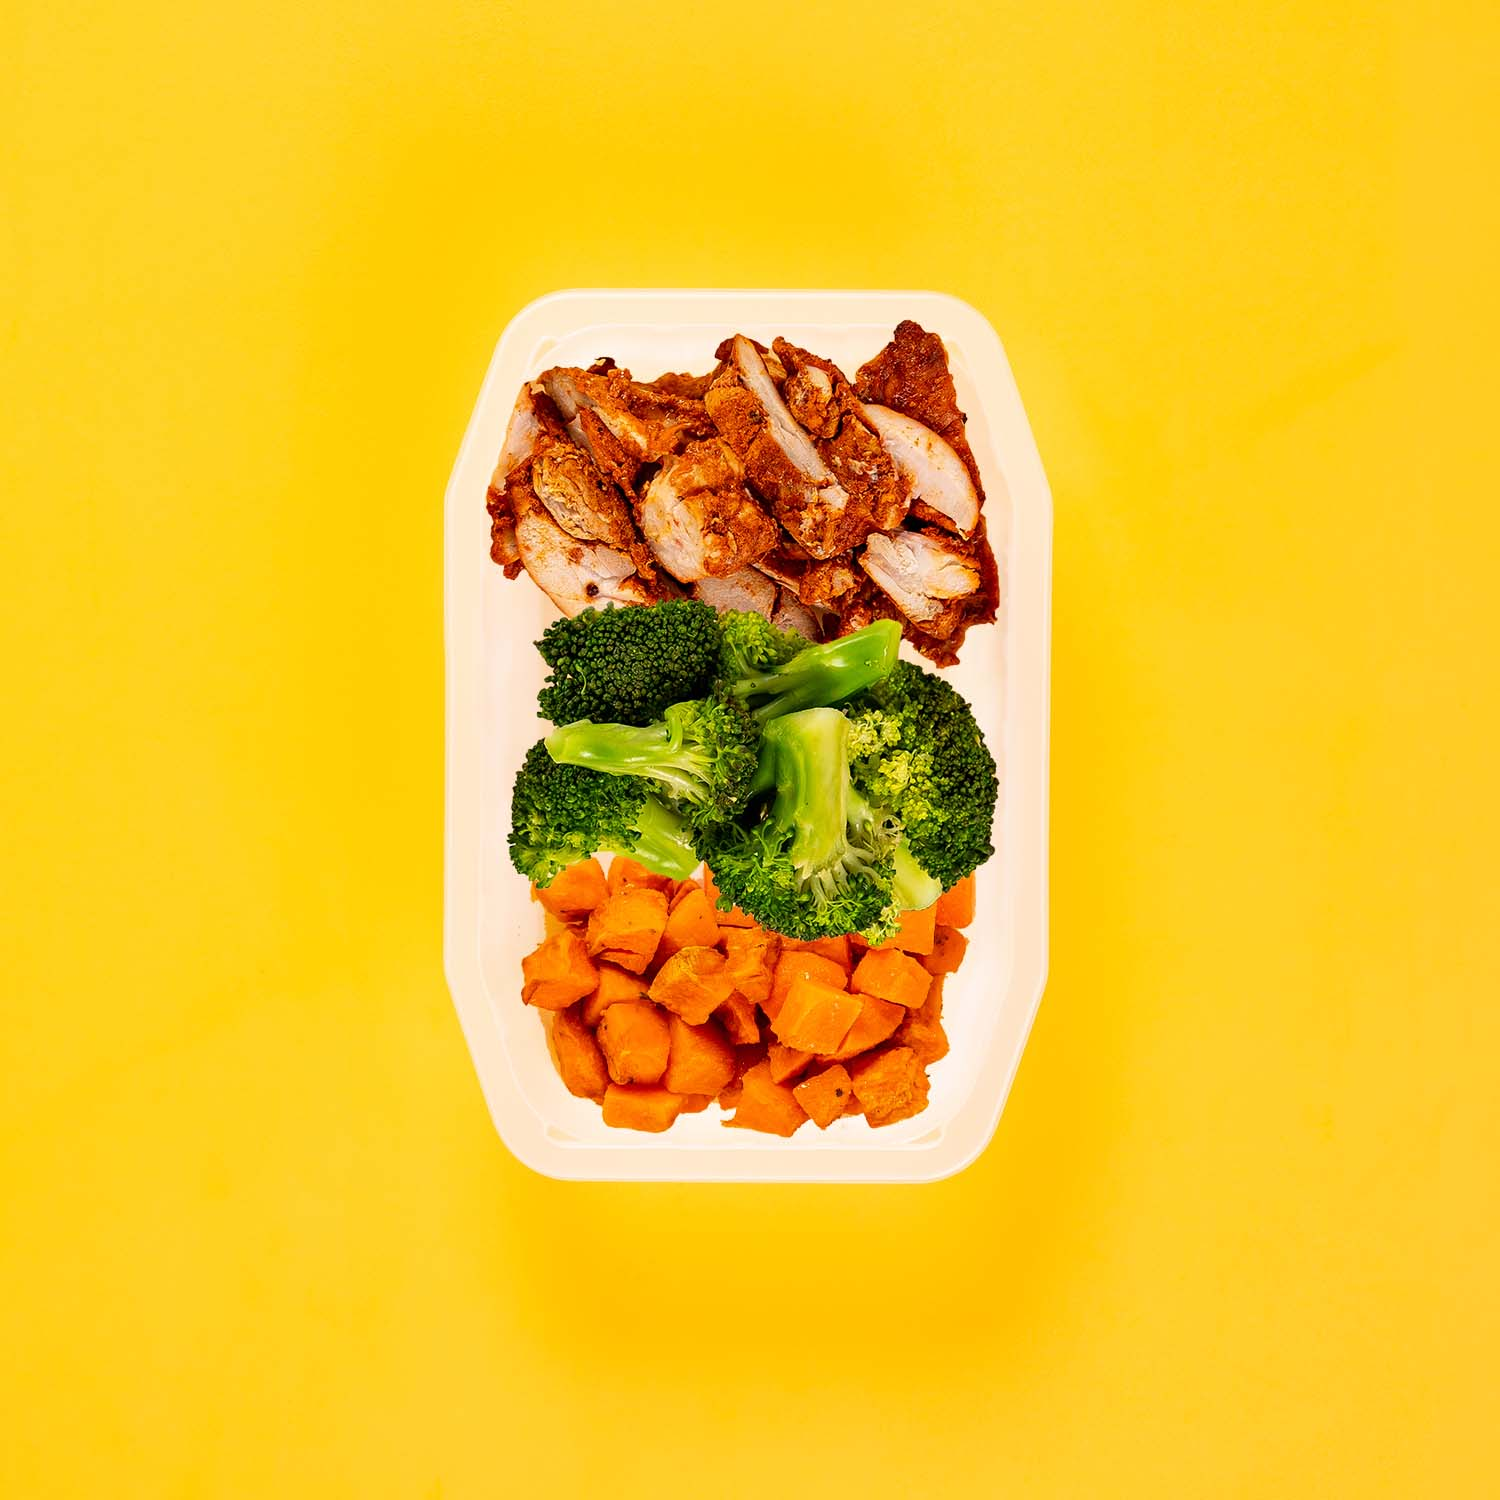 200g Chipotle Chicken Thigh 200g Broccoli 200g Rosemary Baked Sweet Potato